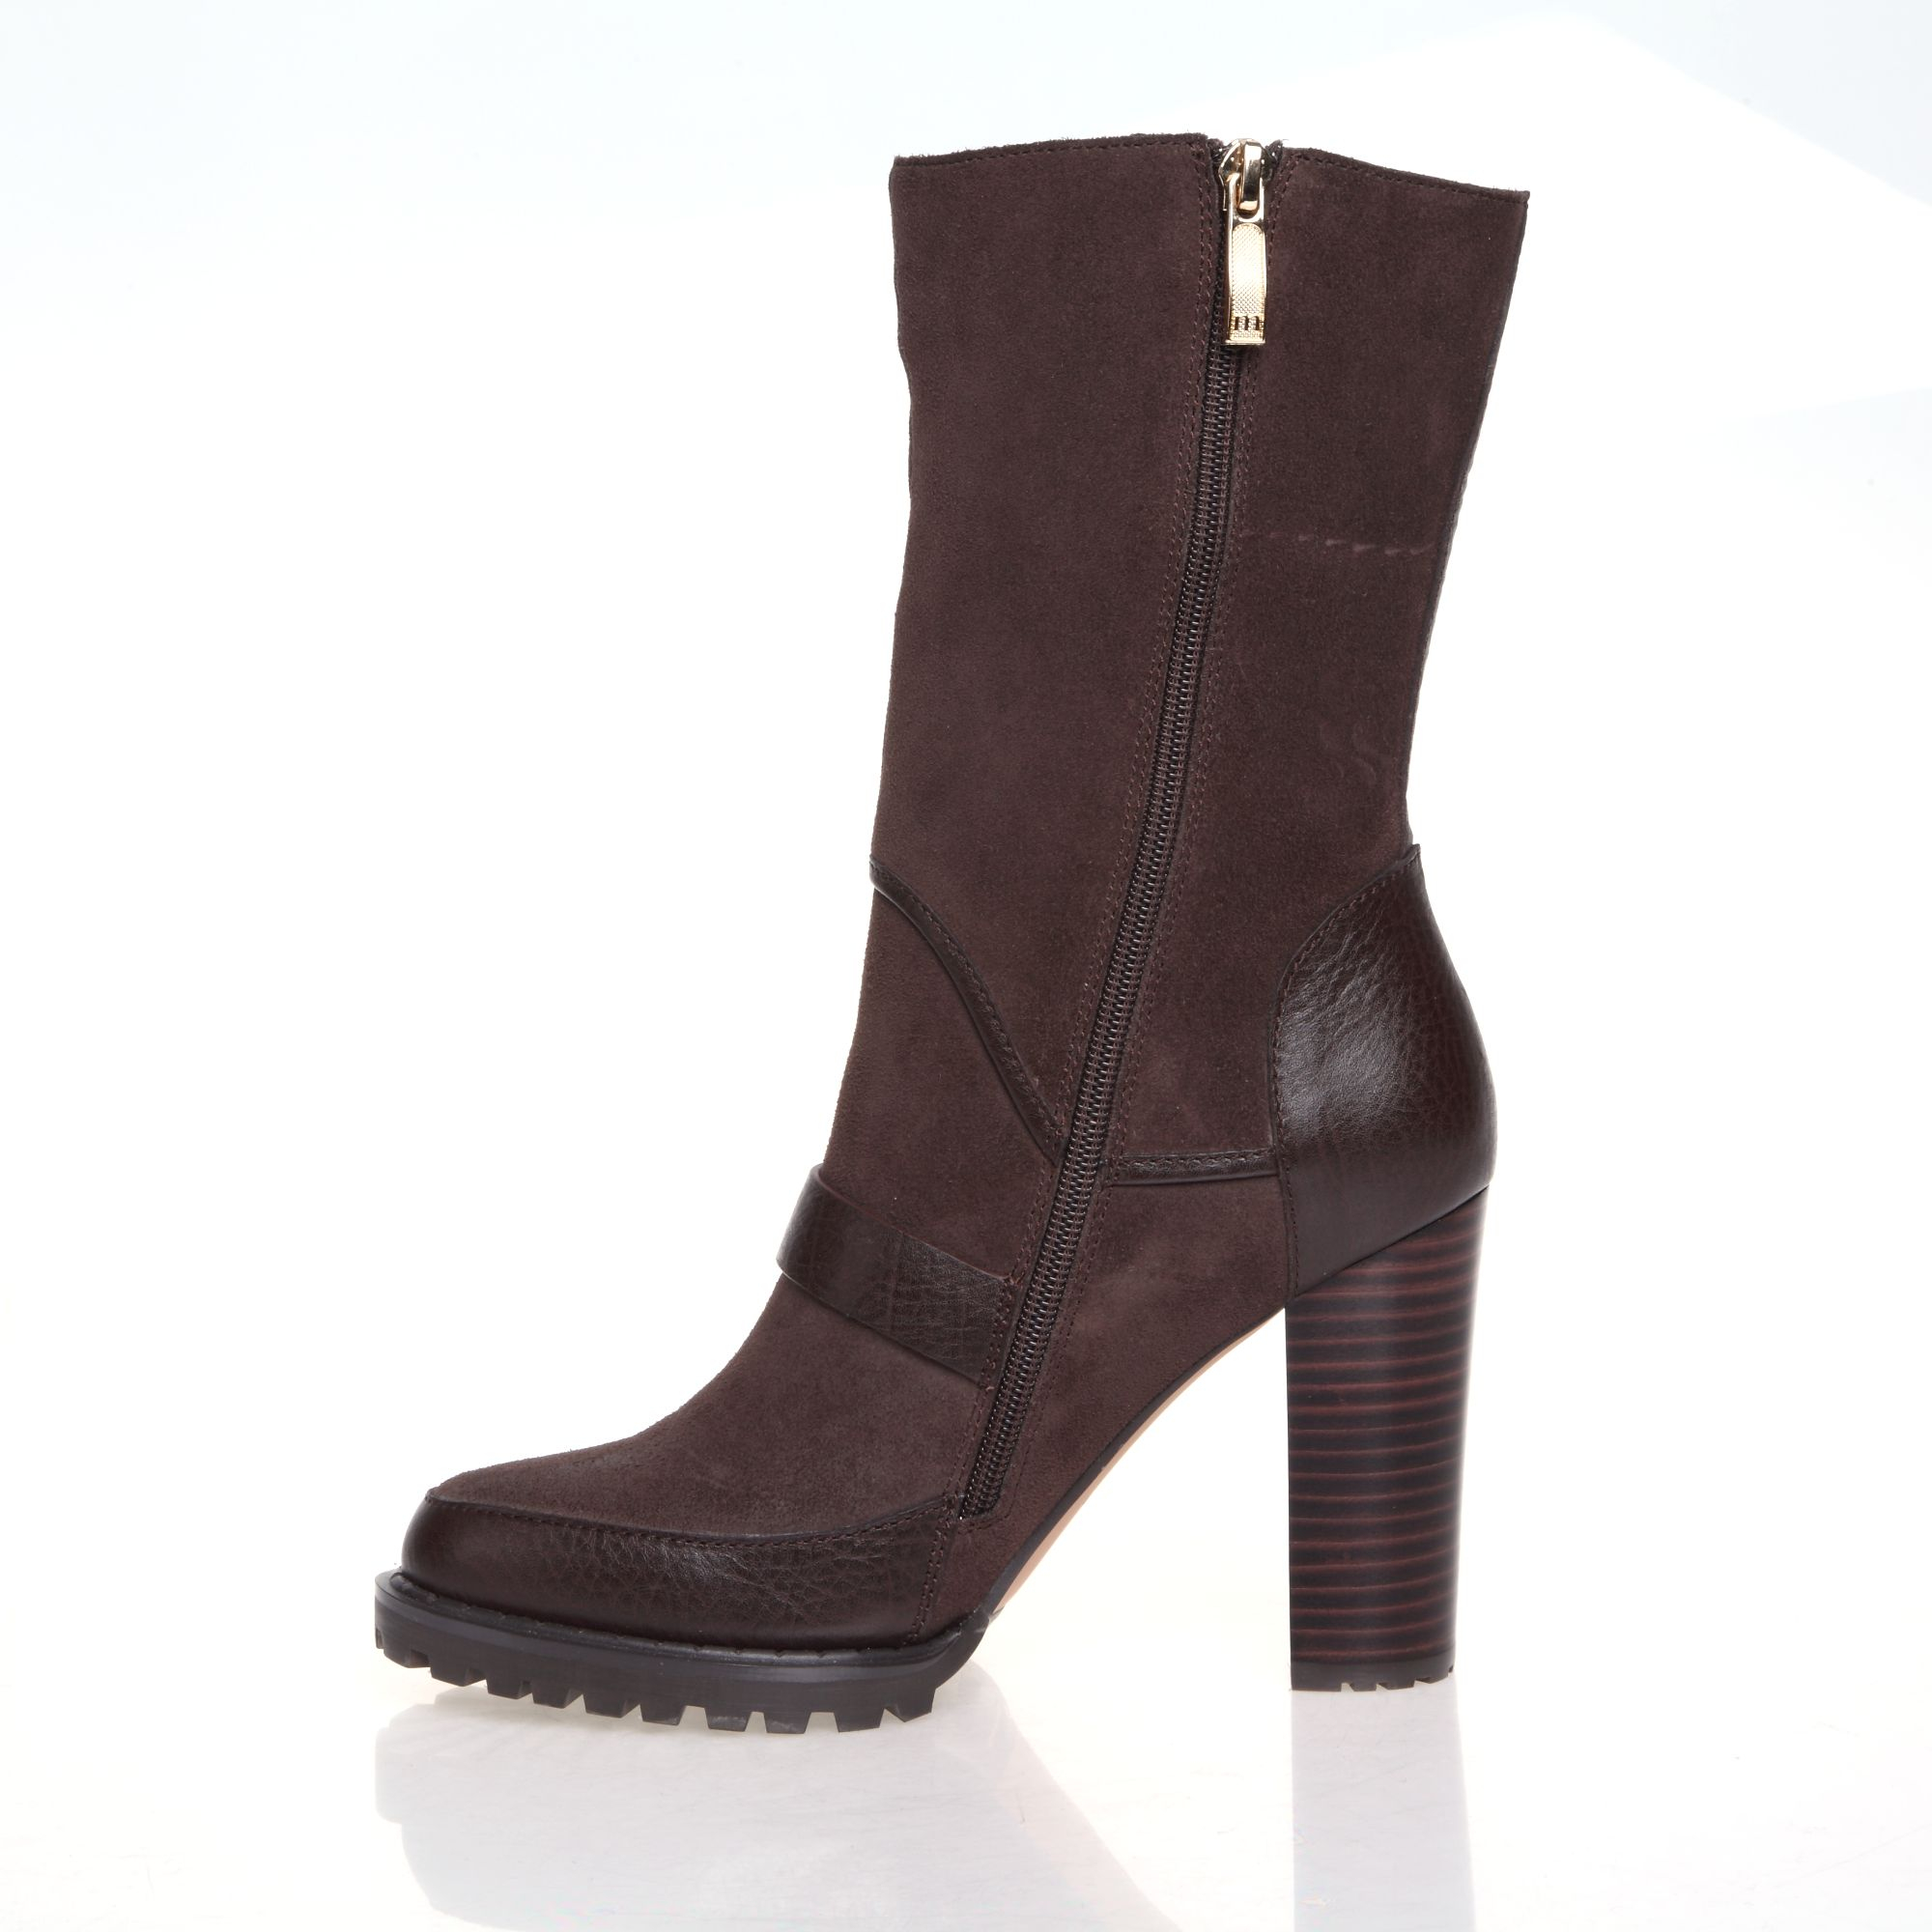 f7f55cef4 Mascotte Buckle Detail Cleated Sole Ankle Boot in Brown - Lyst